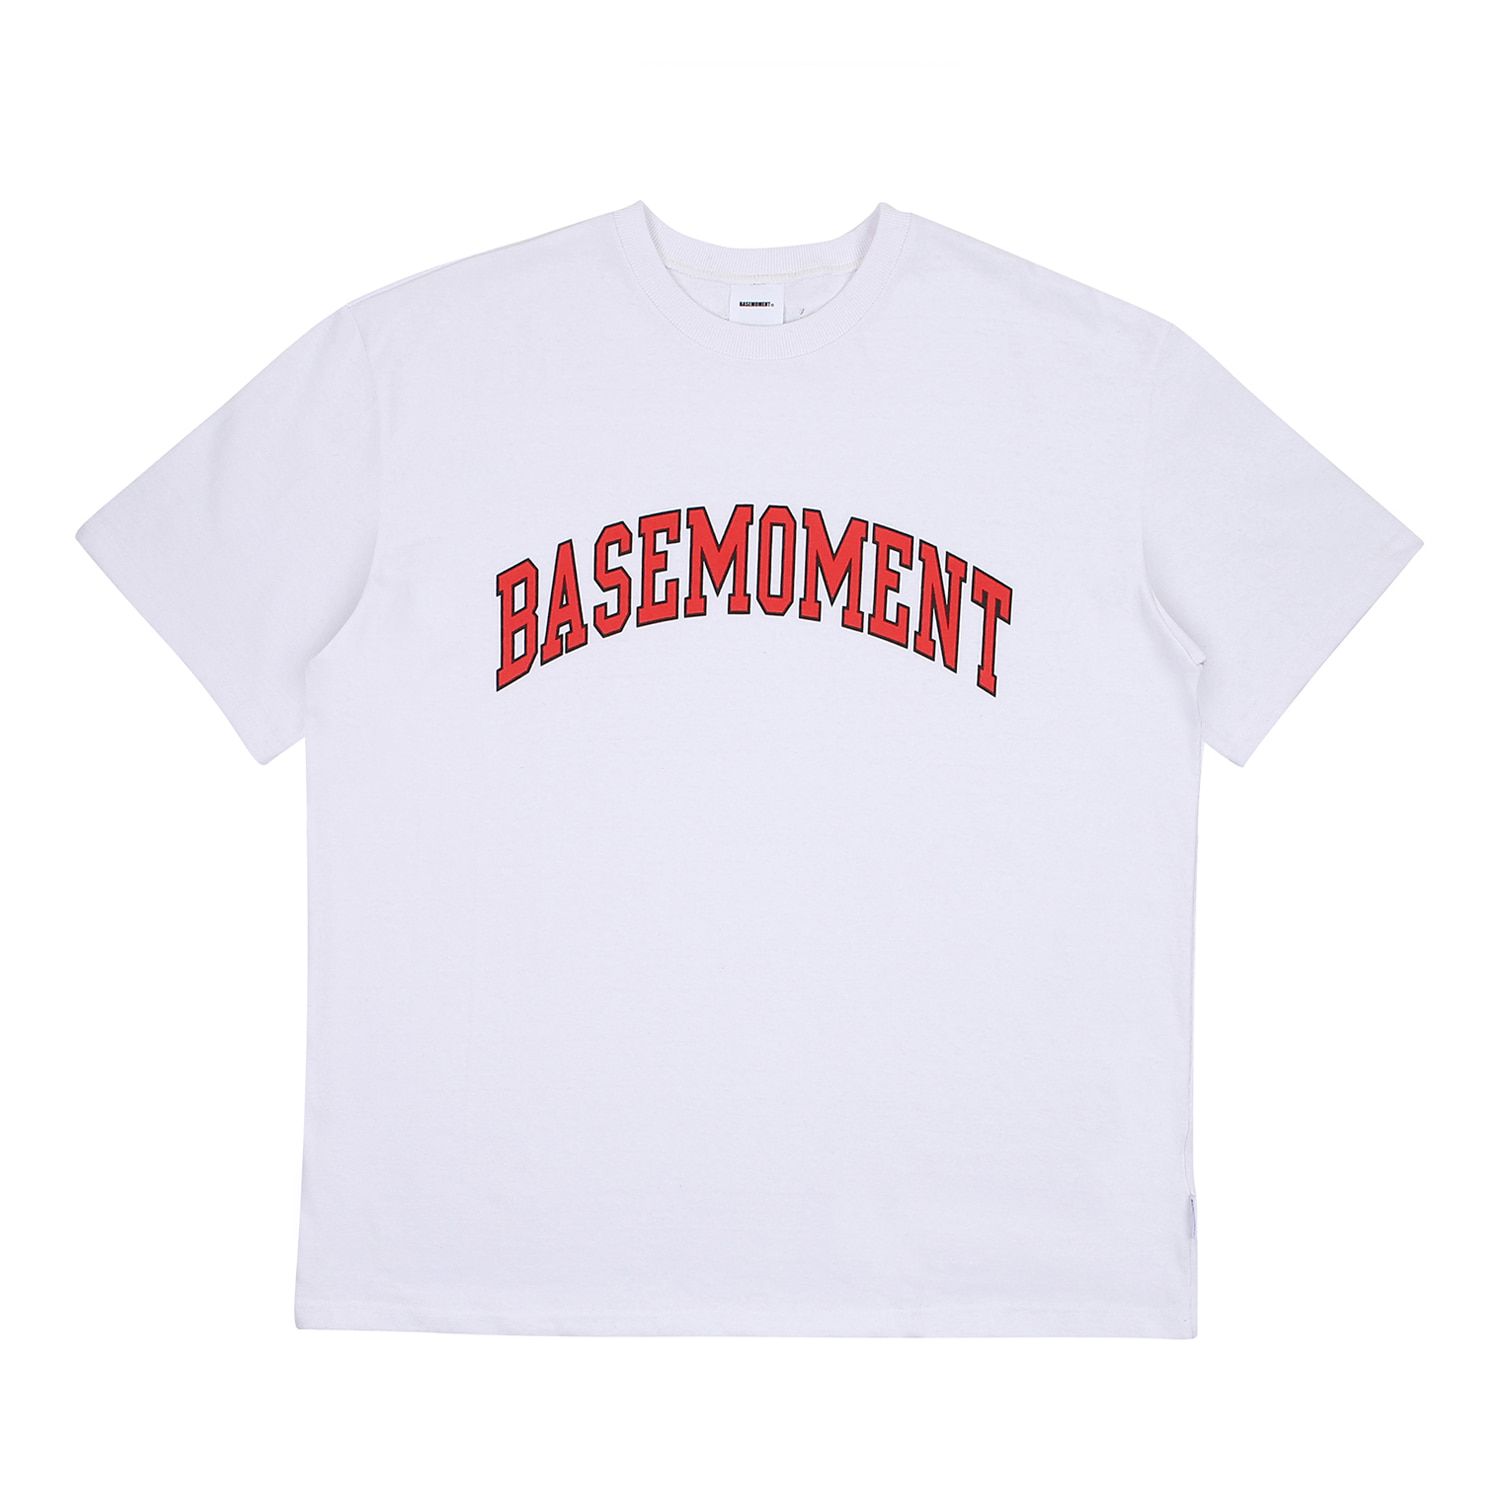 [BASEMOMENT] Arch Logo tee - White